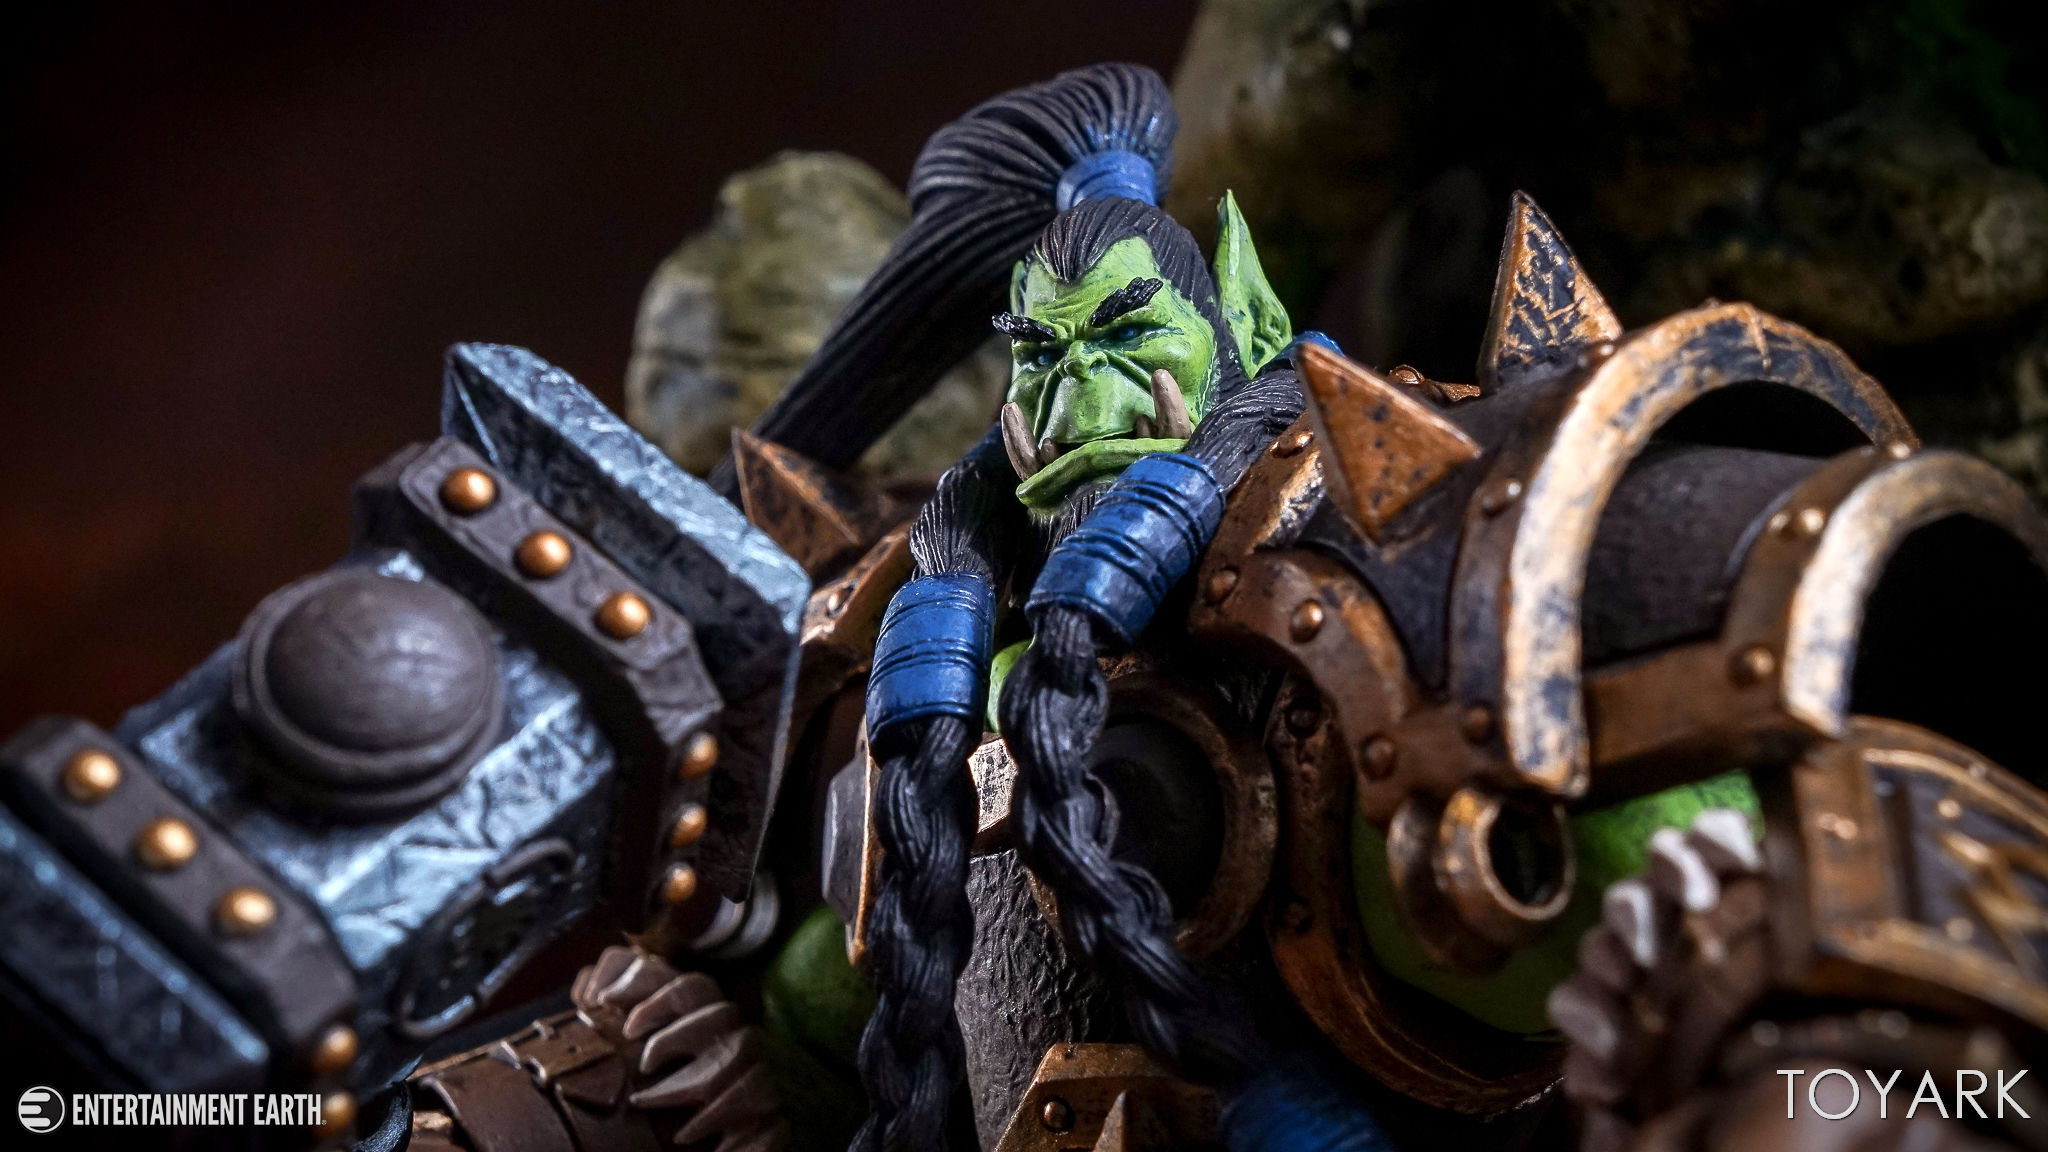 http://news.toyark.com/wp-content/uploads/sites/4/2017/08/NECA-Heroes-of-the-Storm-Thrall-034.jpg